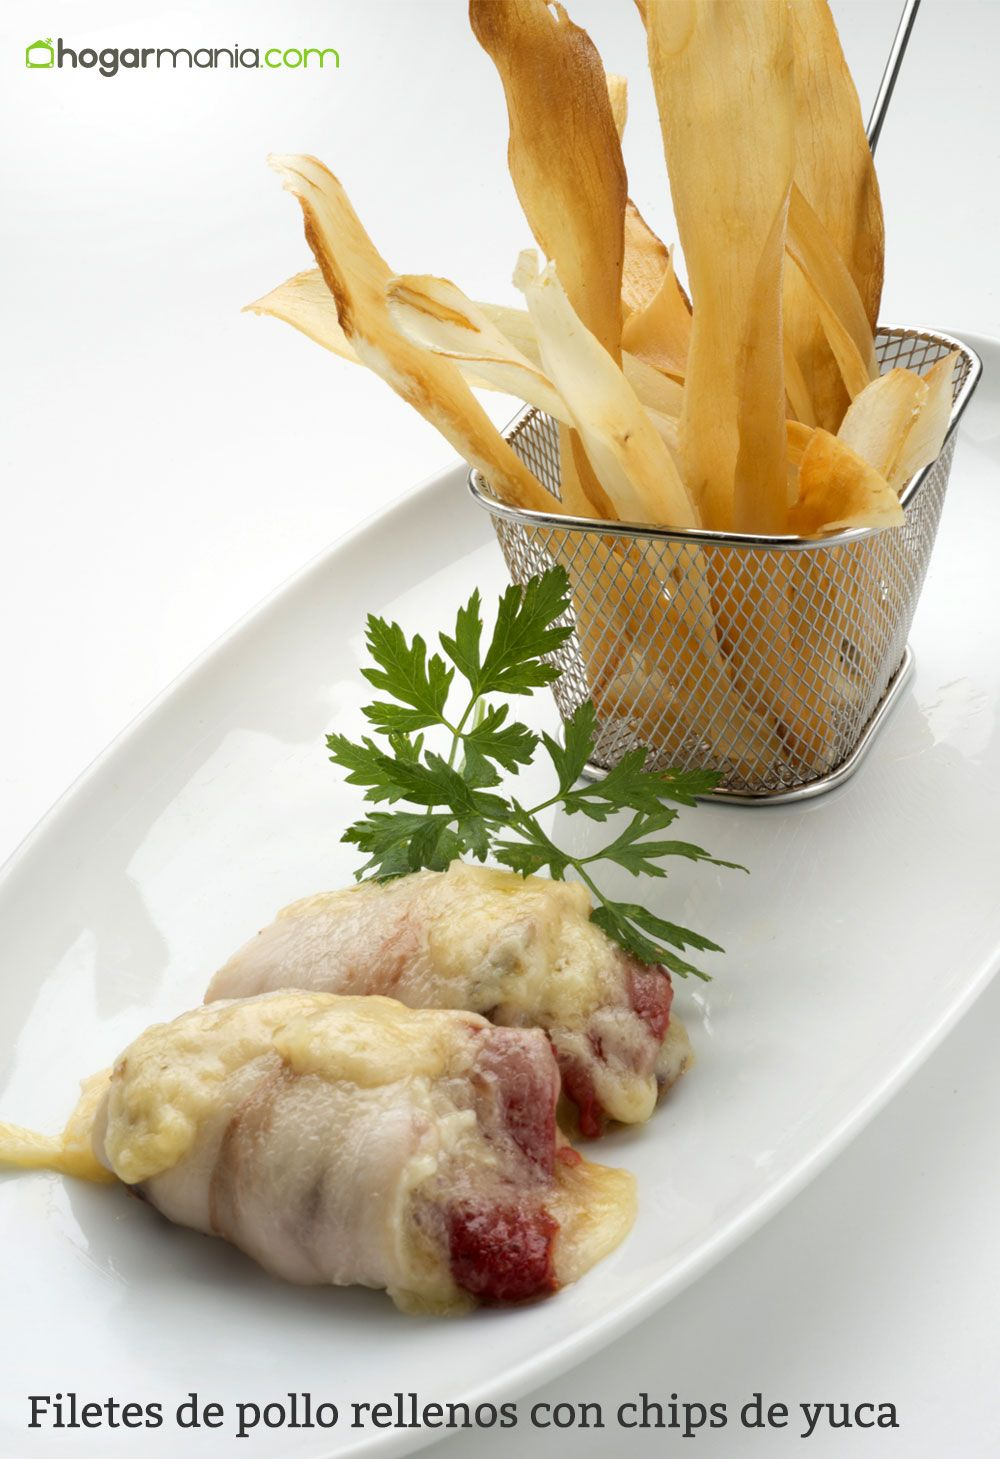 Filetes de pollo rellenos con chips de yuca